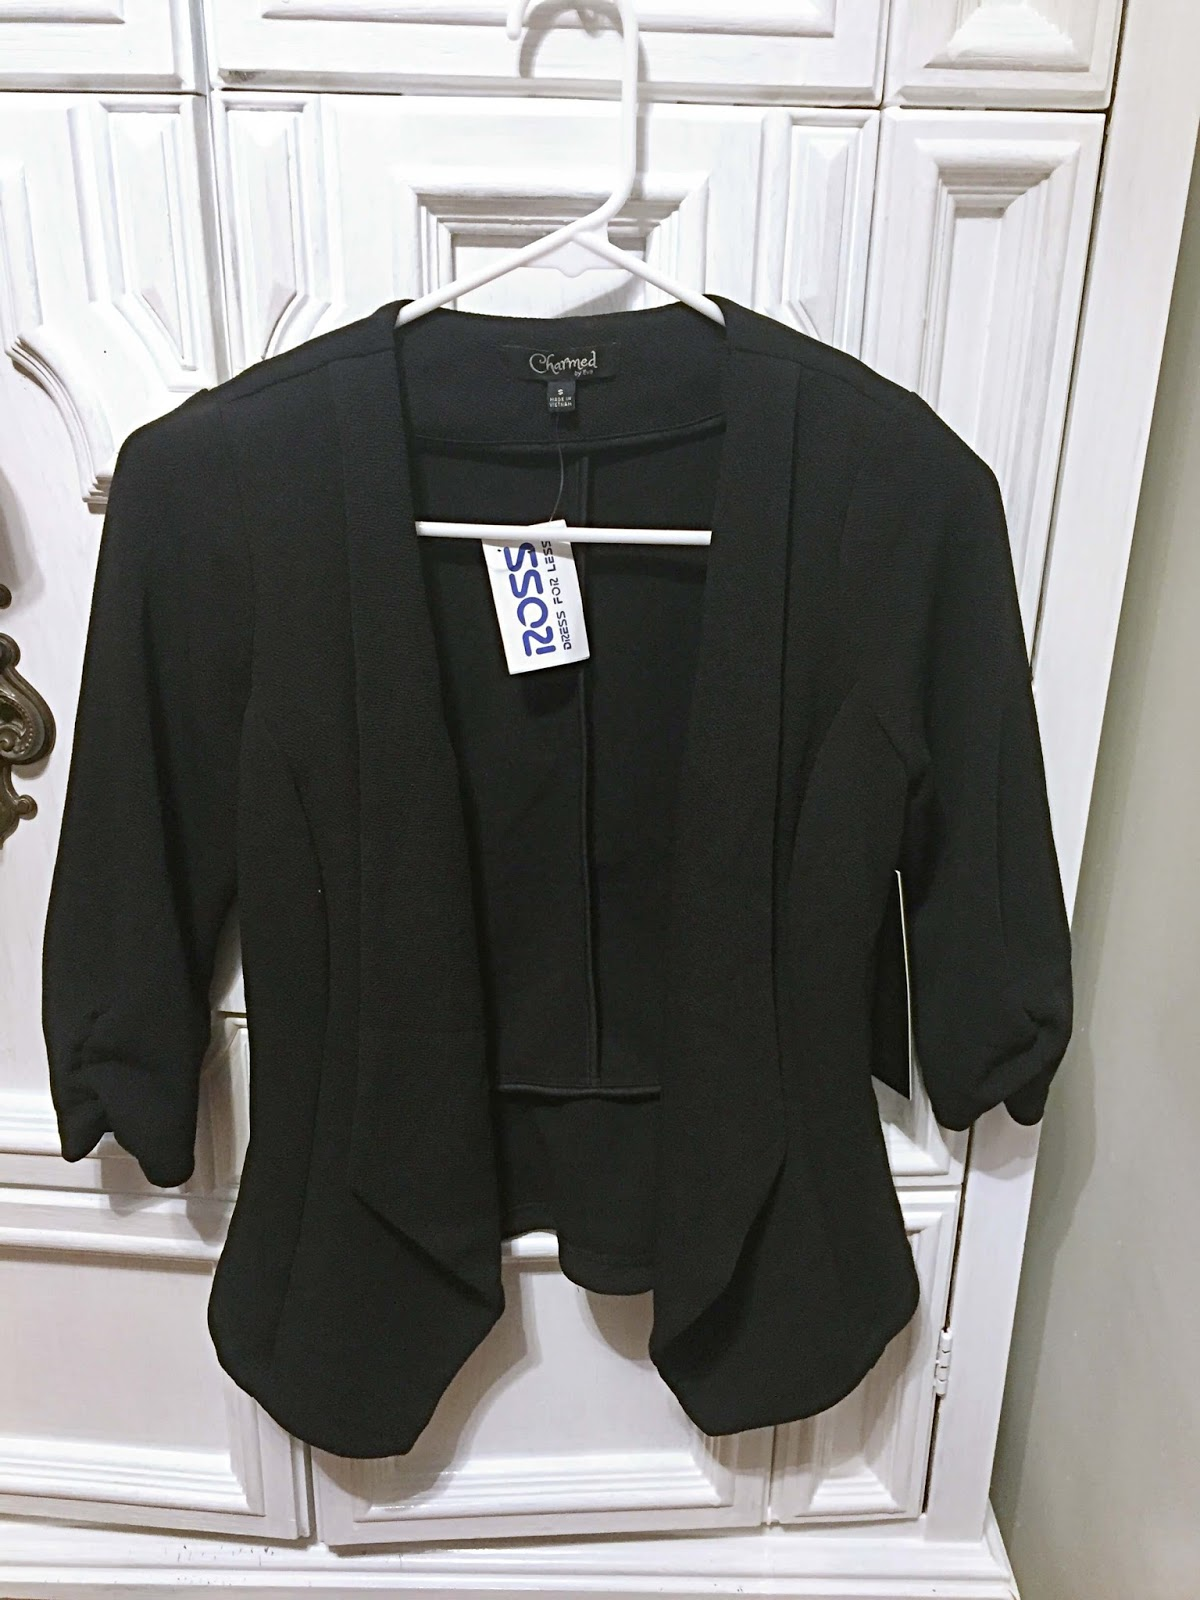 Charmed by Eve professional jacket